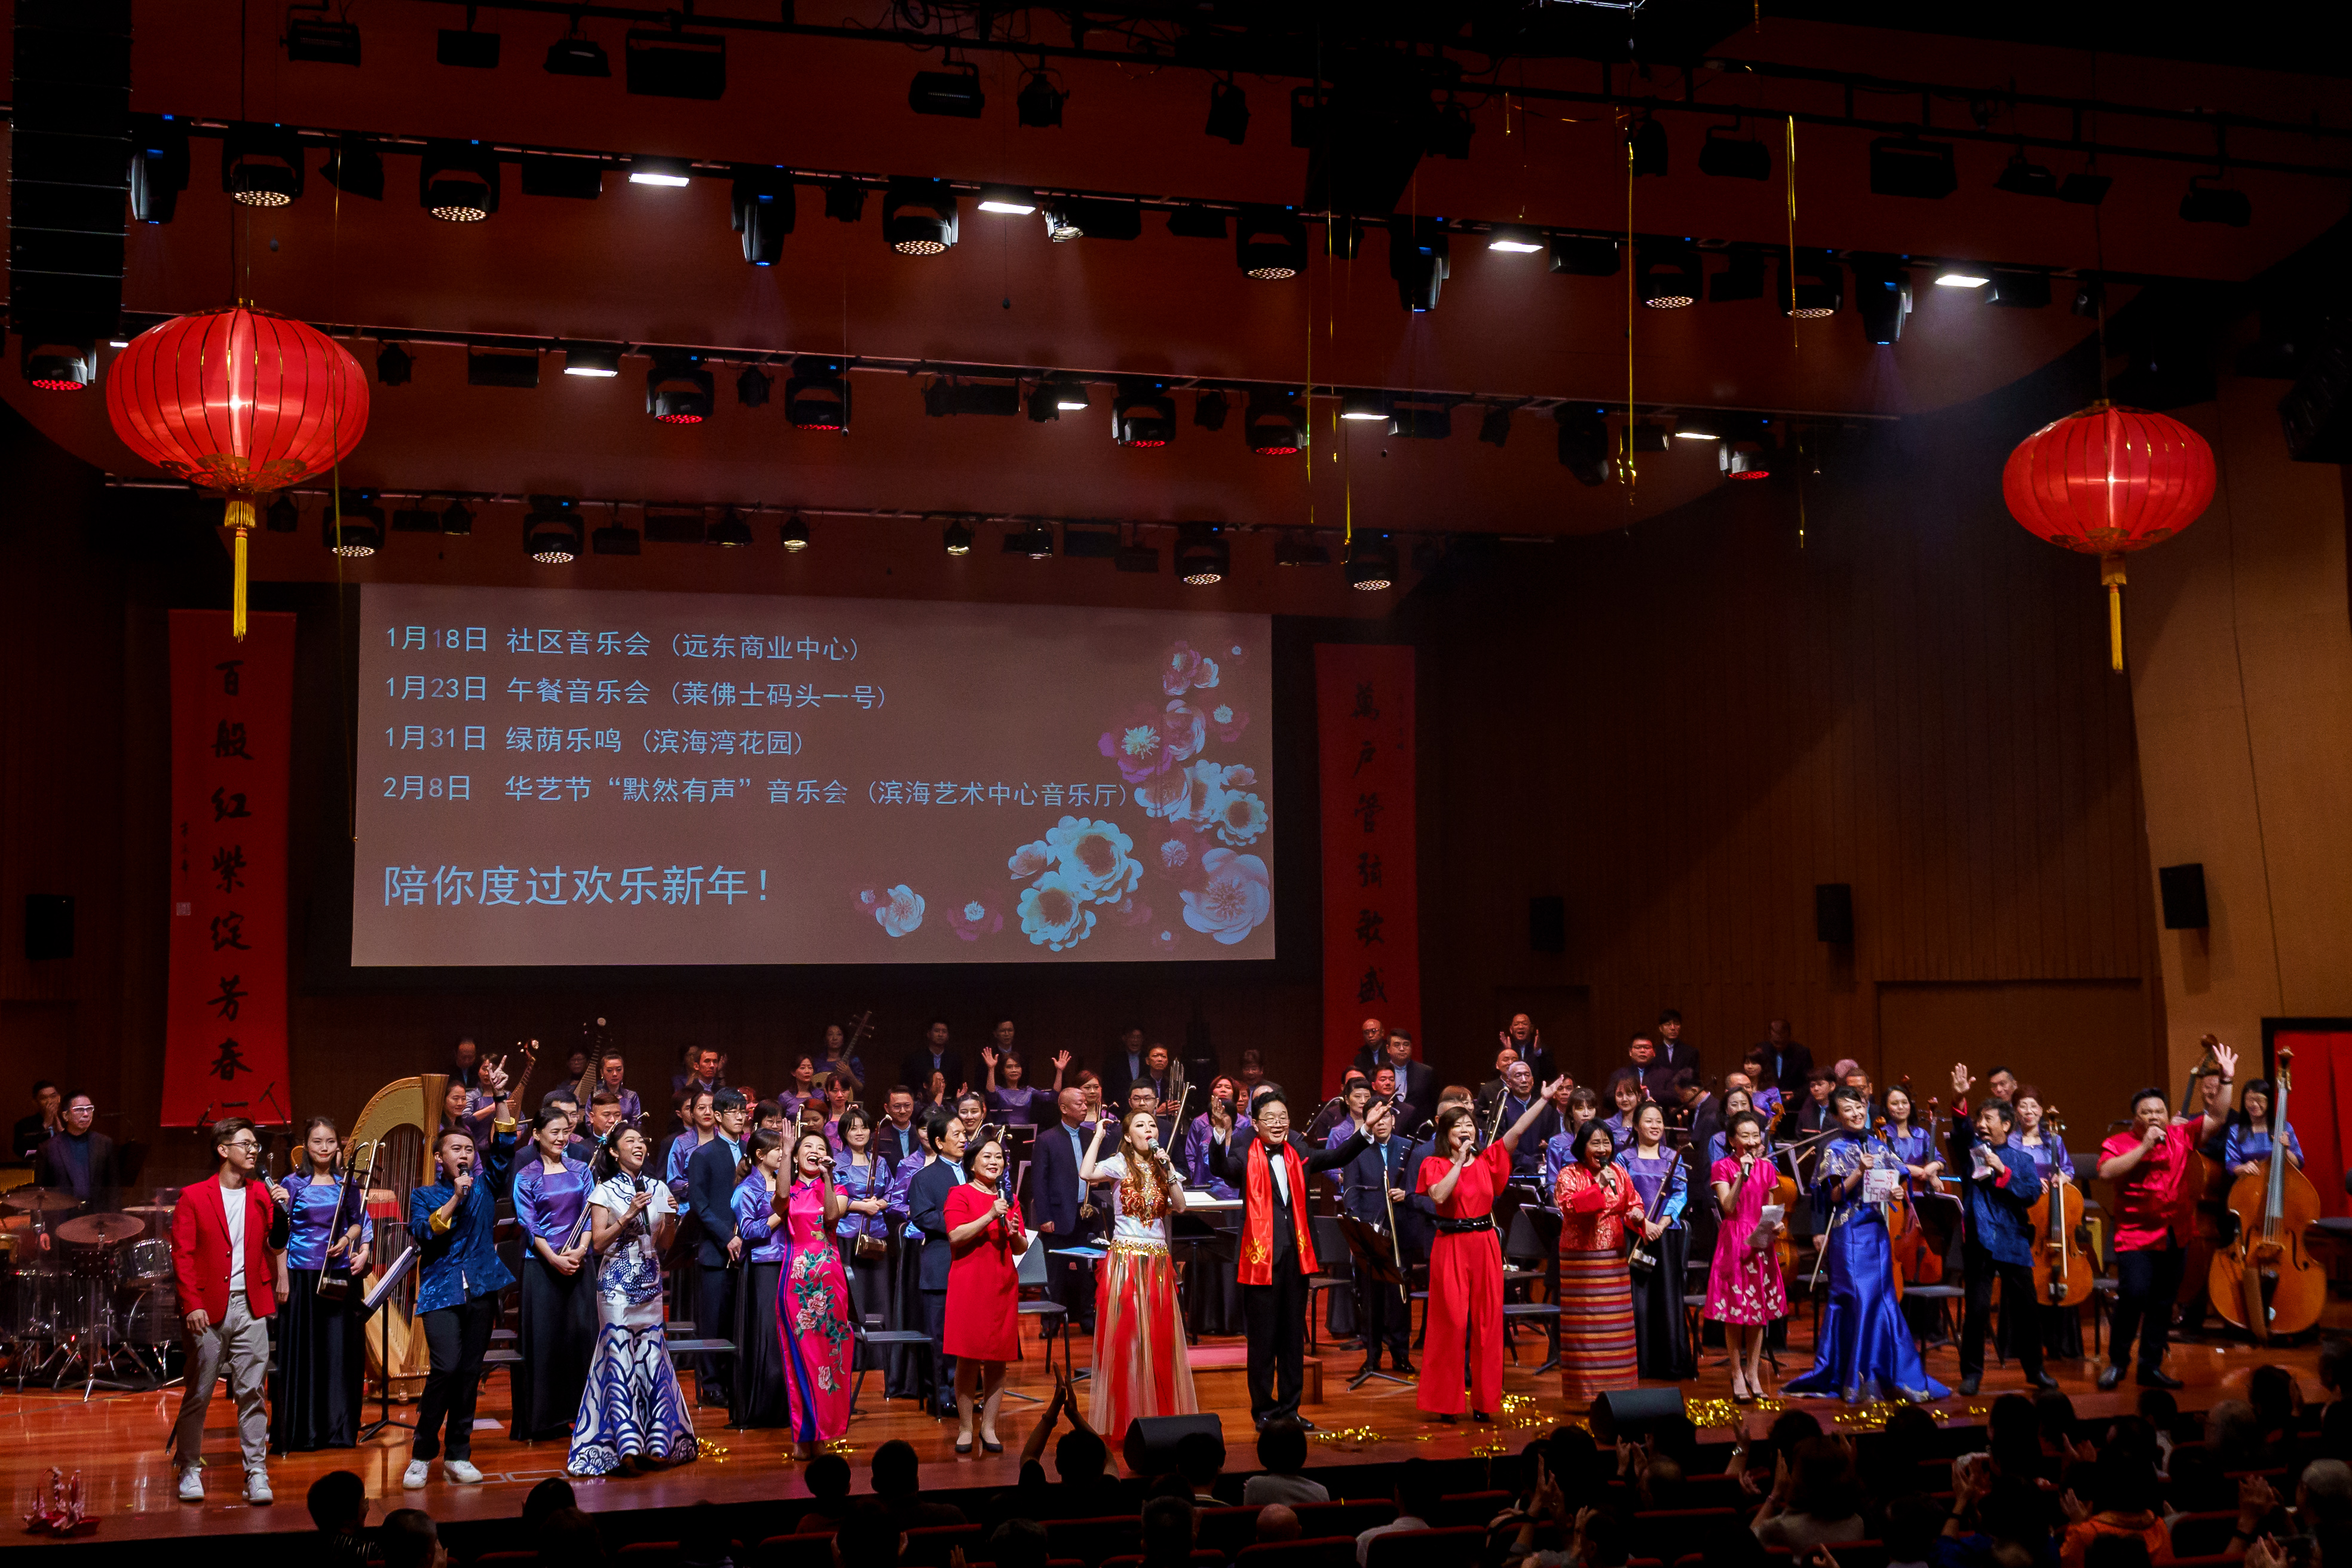 sco_cny_concert_rhapsodies_spring_2020_10_jan_hr_504 Gallery